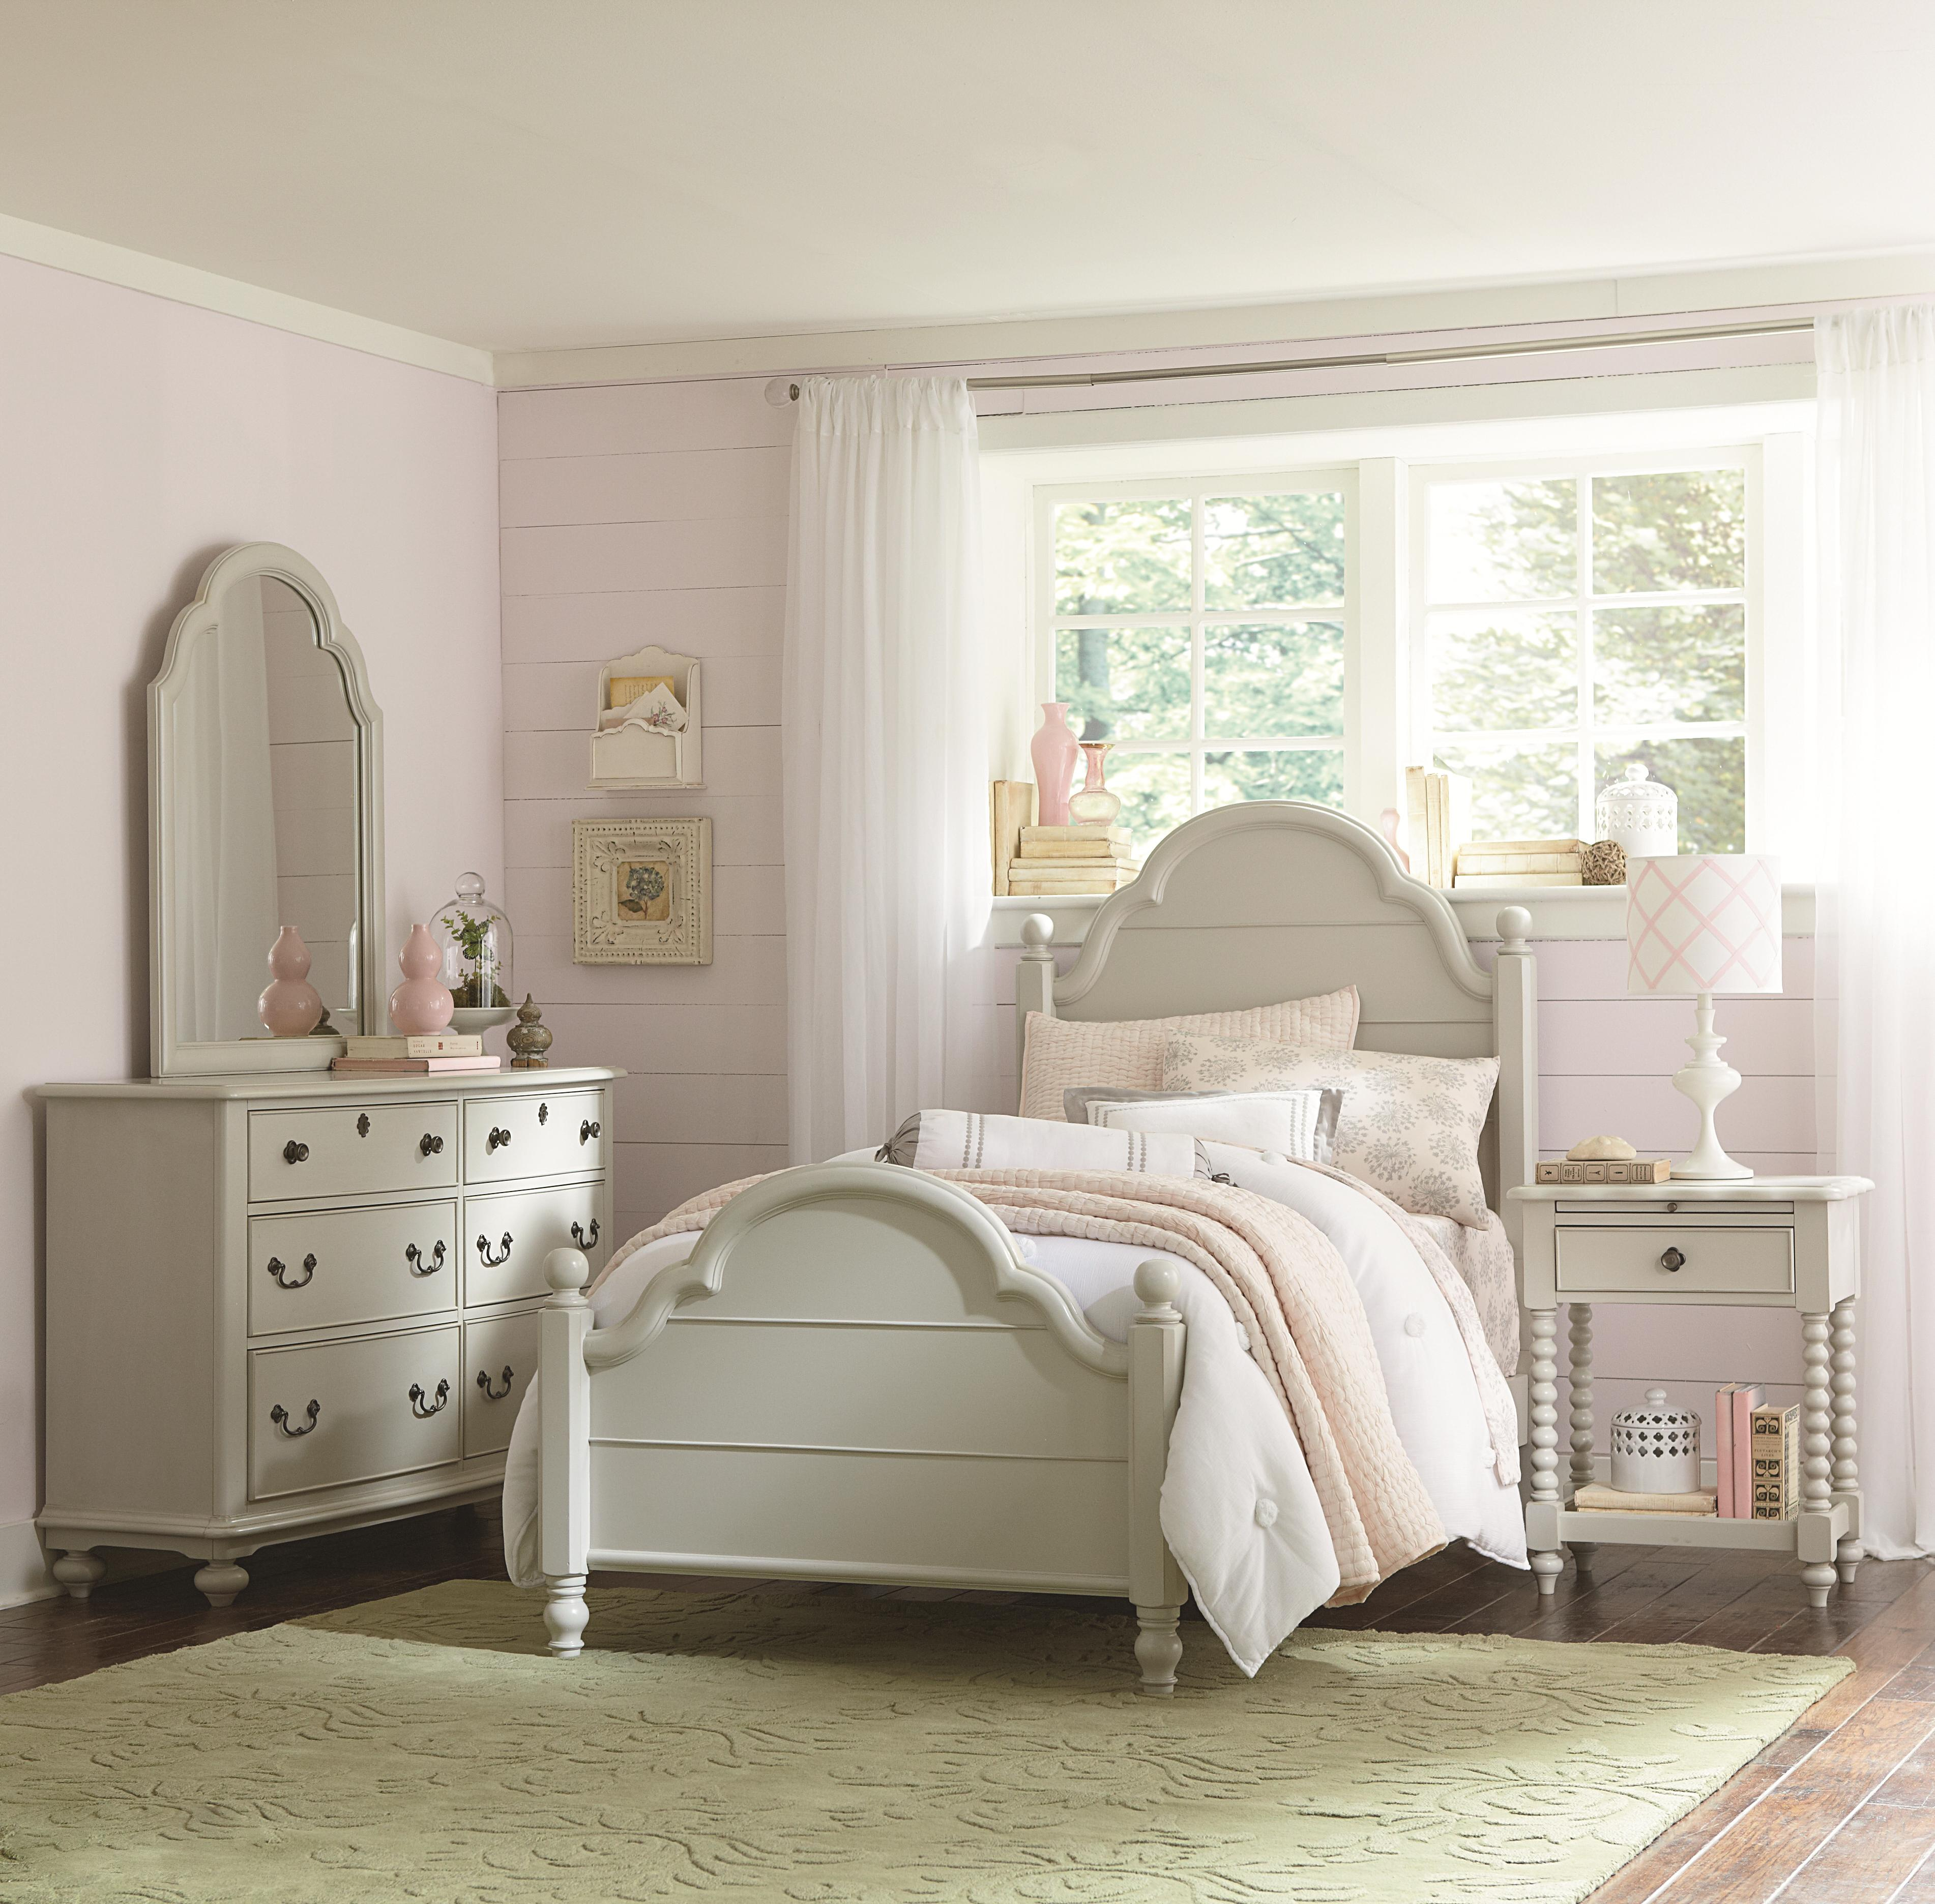 Legacy Classic Kids Inspirations by Wendy Bellissimo Full Bedroom Group 2 - Item Number: 3830 Full Bedroom Group 2